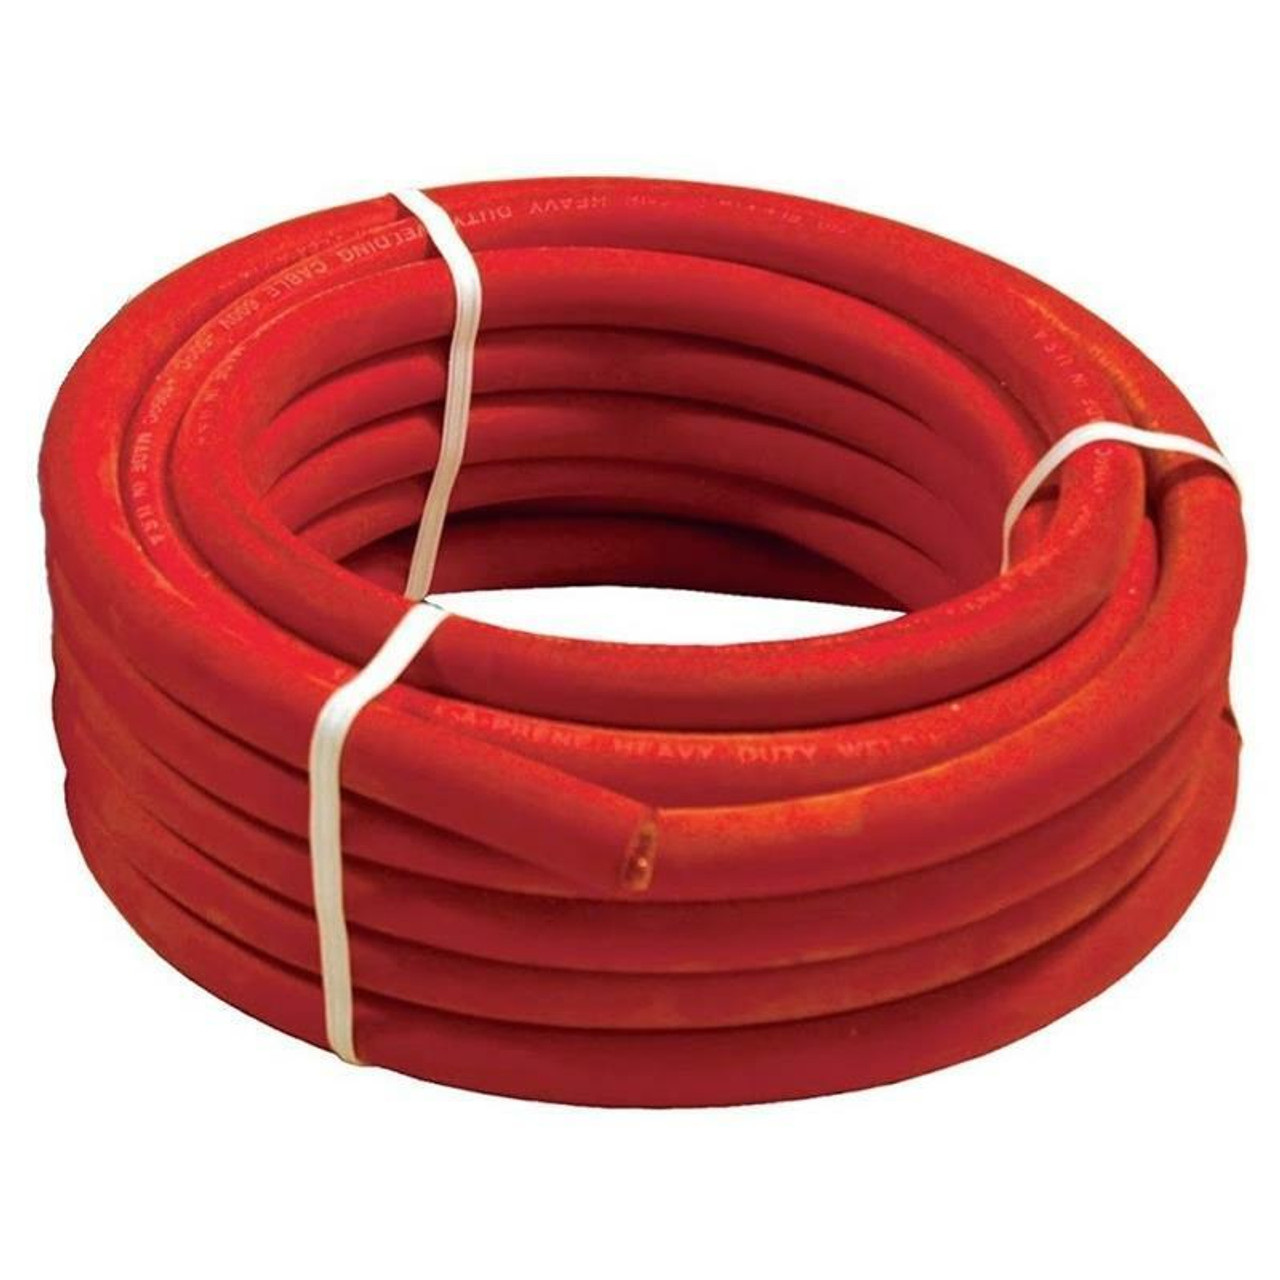 100 Foot of Red 1/0 Flex-A-Prene Welding and Battery Cable Made In USA